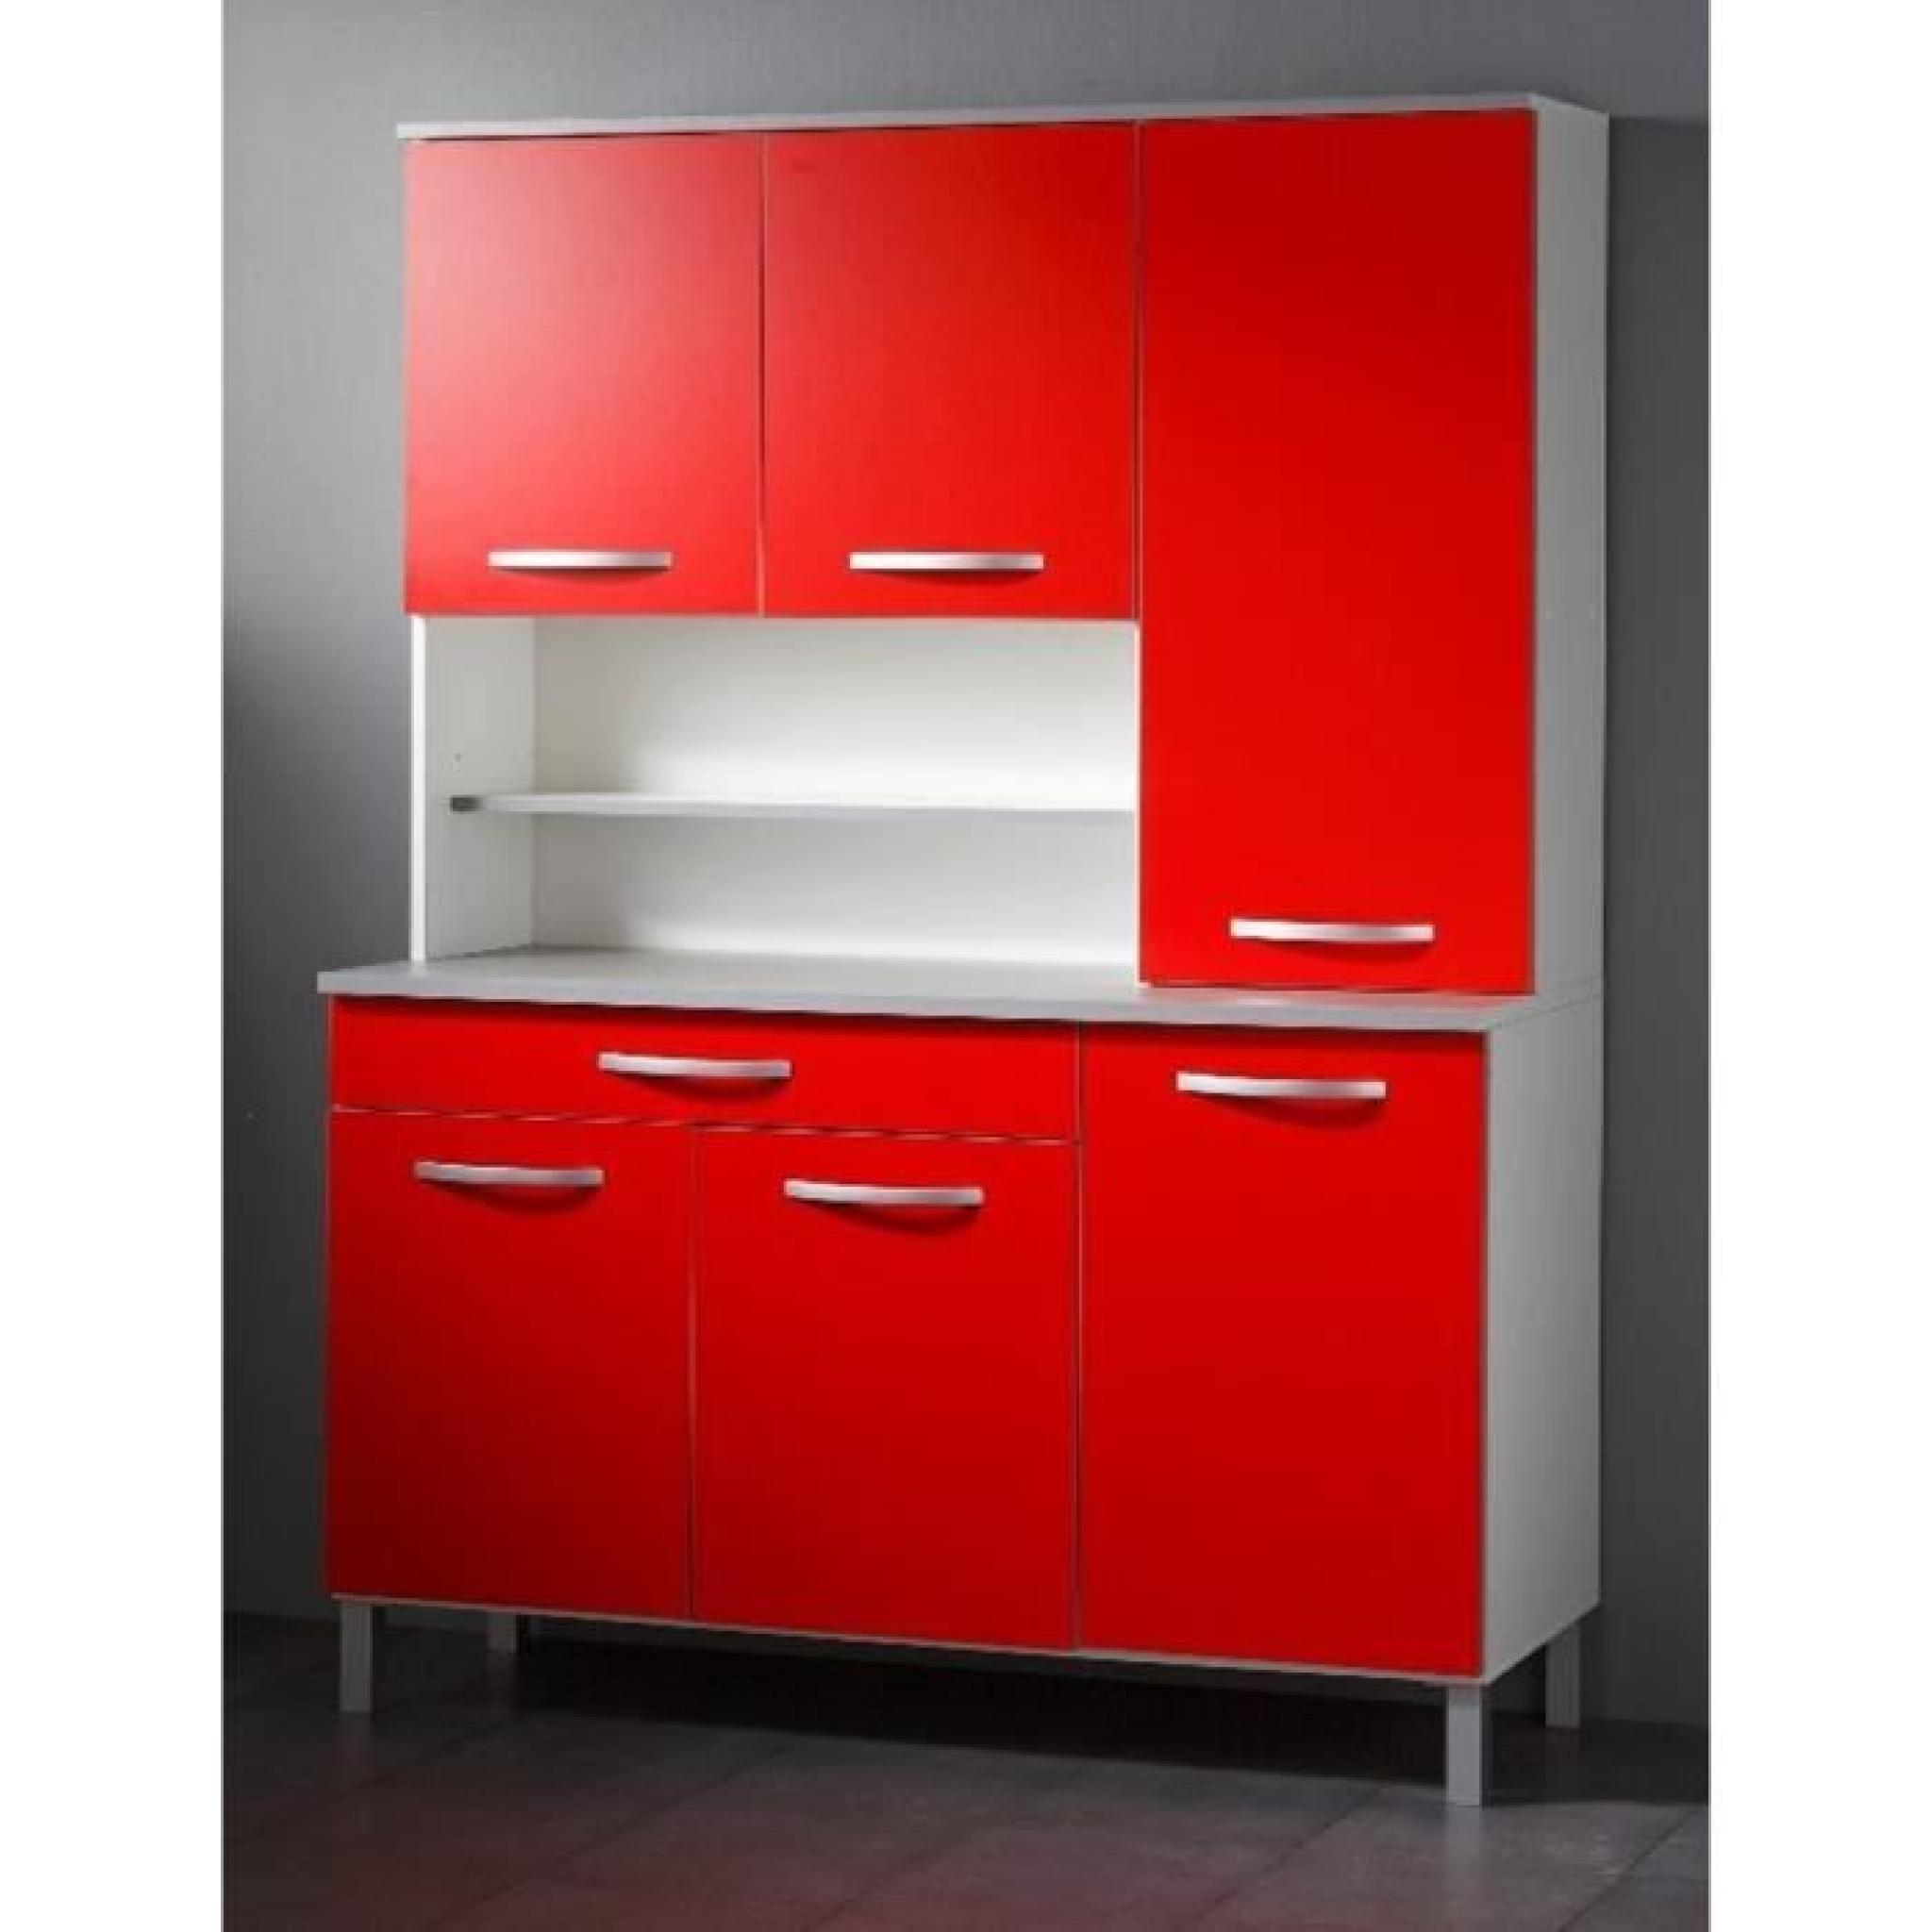 buffet de cuisine coloris blanc et rouge avec 6 portes et 1 tiroir h 184 x l 101 x p 42 cm. Black Bedroom Furniture Sets. Home Design Ideas